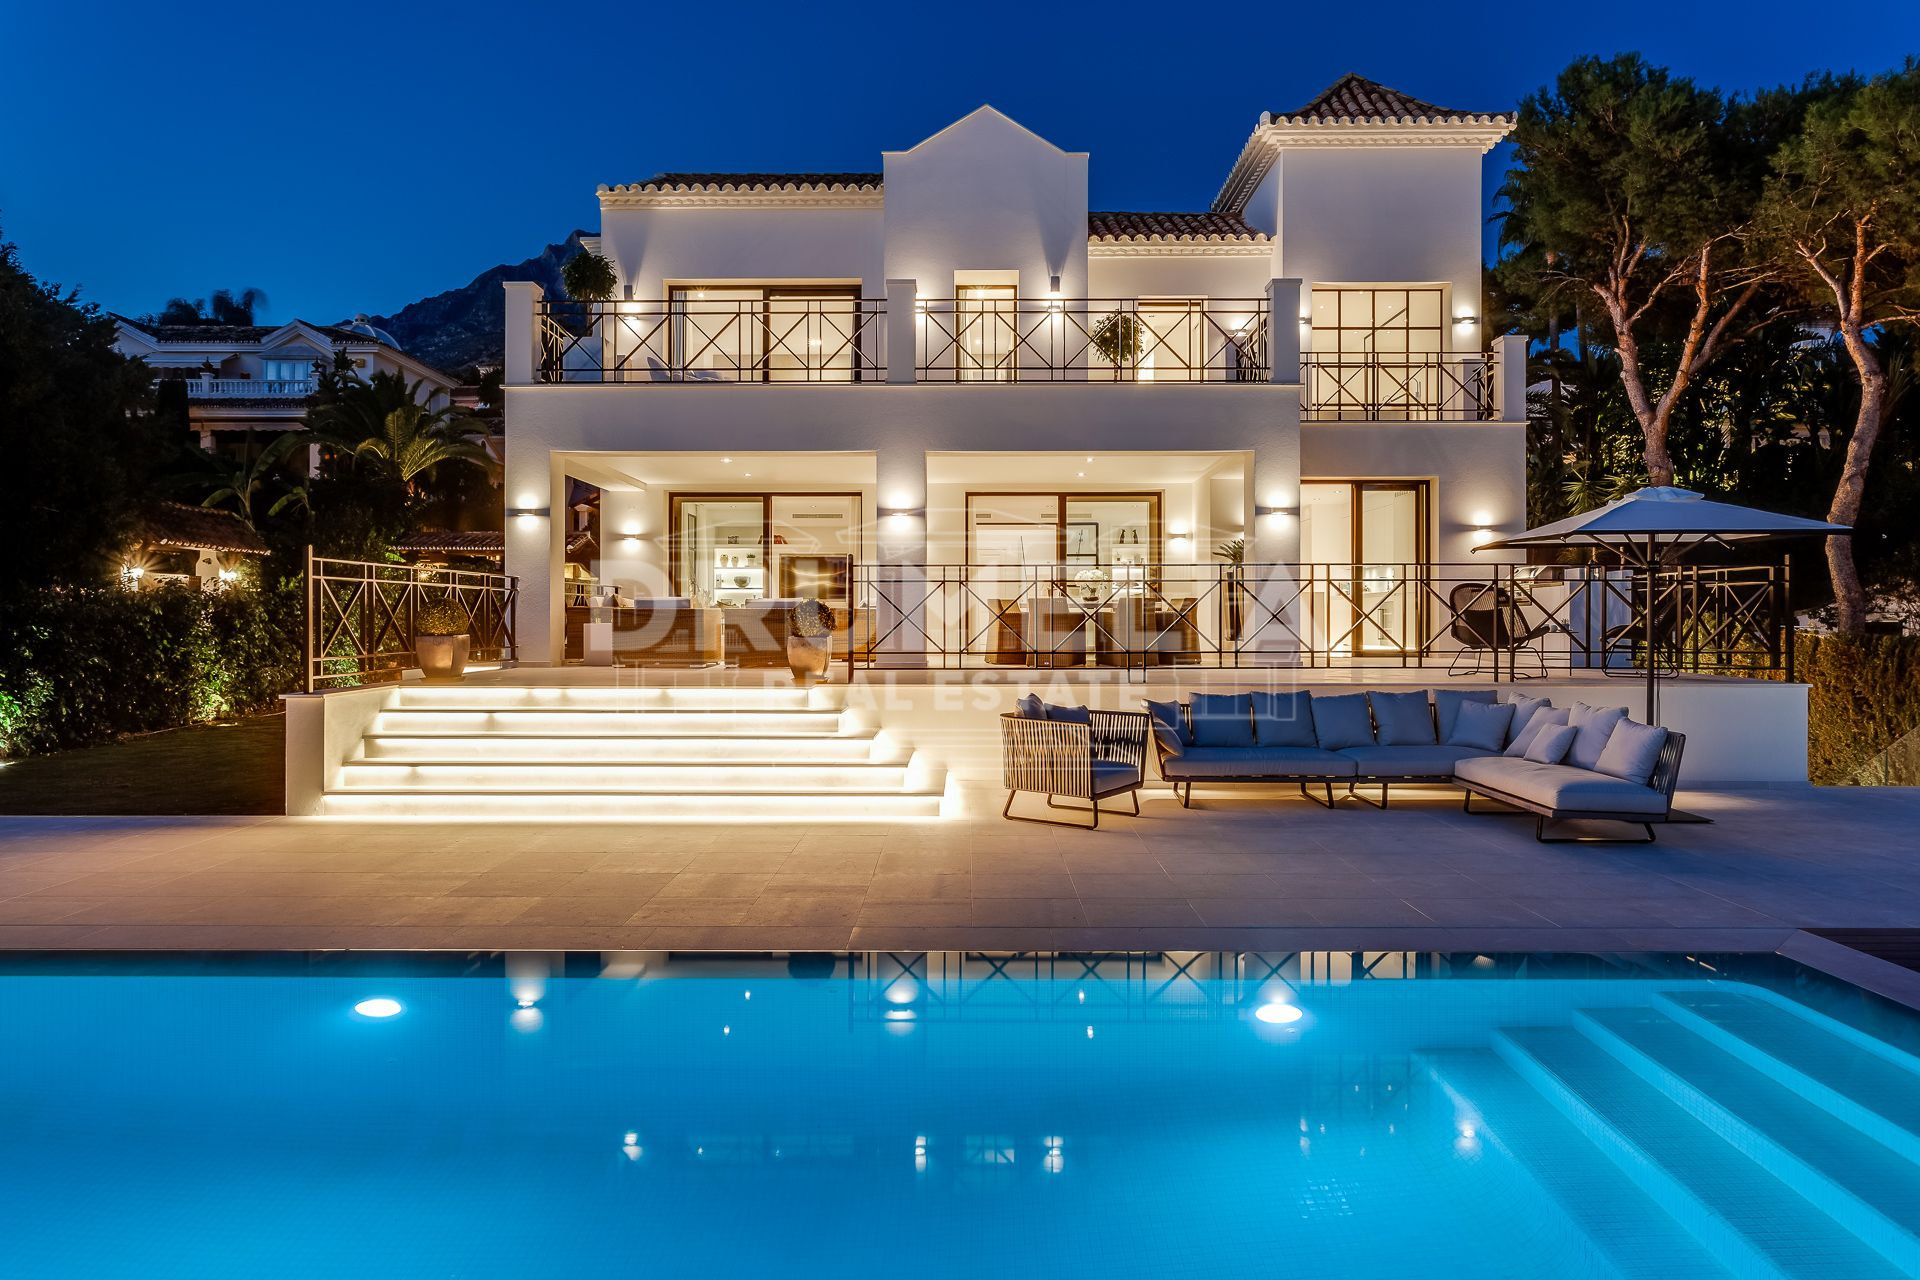 Marbella Golden Mile, State-of- Art Modern Luxury Villa, Sierra Blanca, Marbella Golden Mile (Marbella)